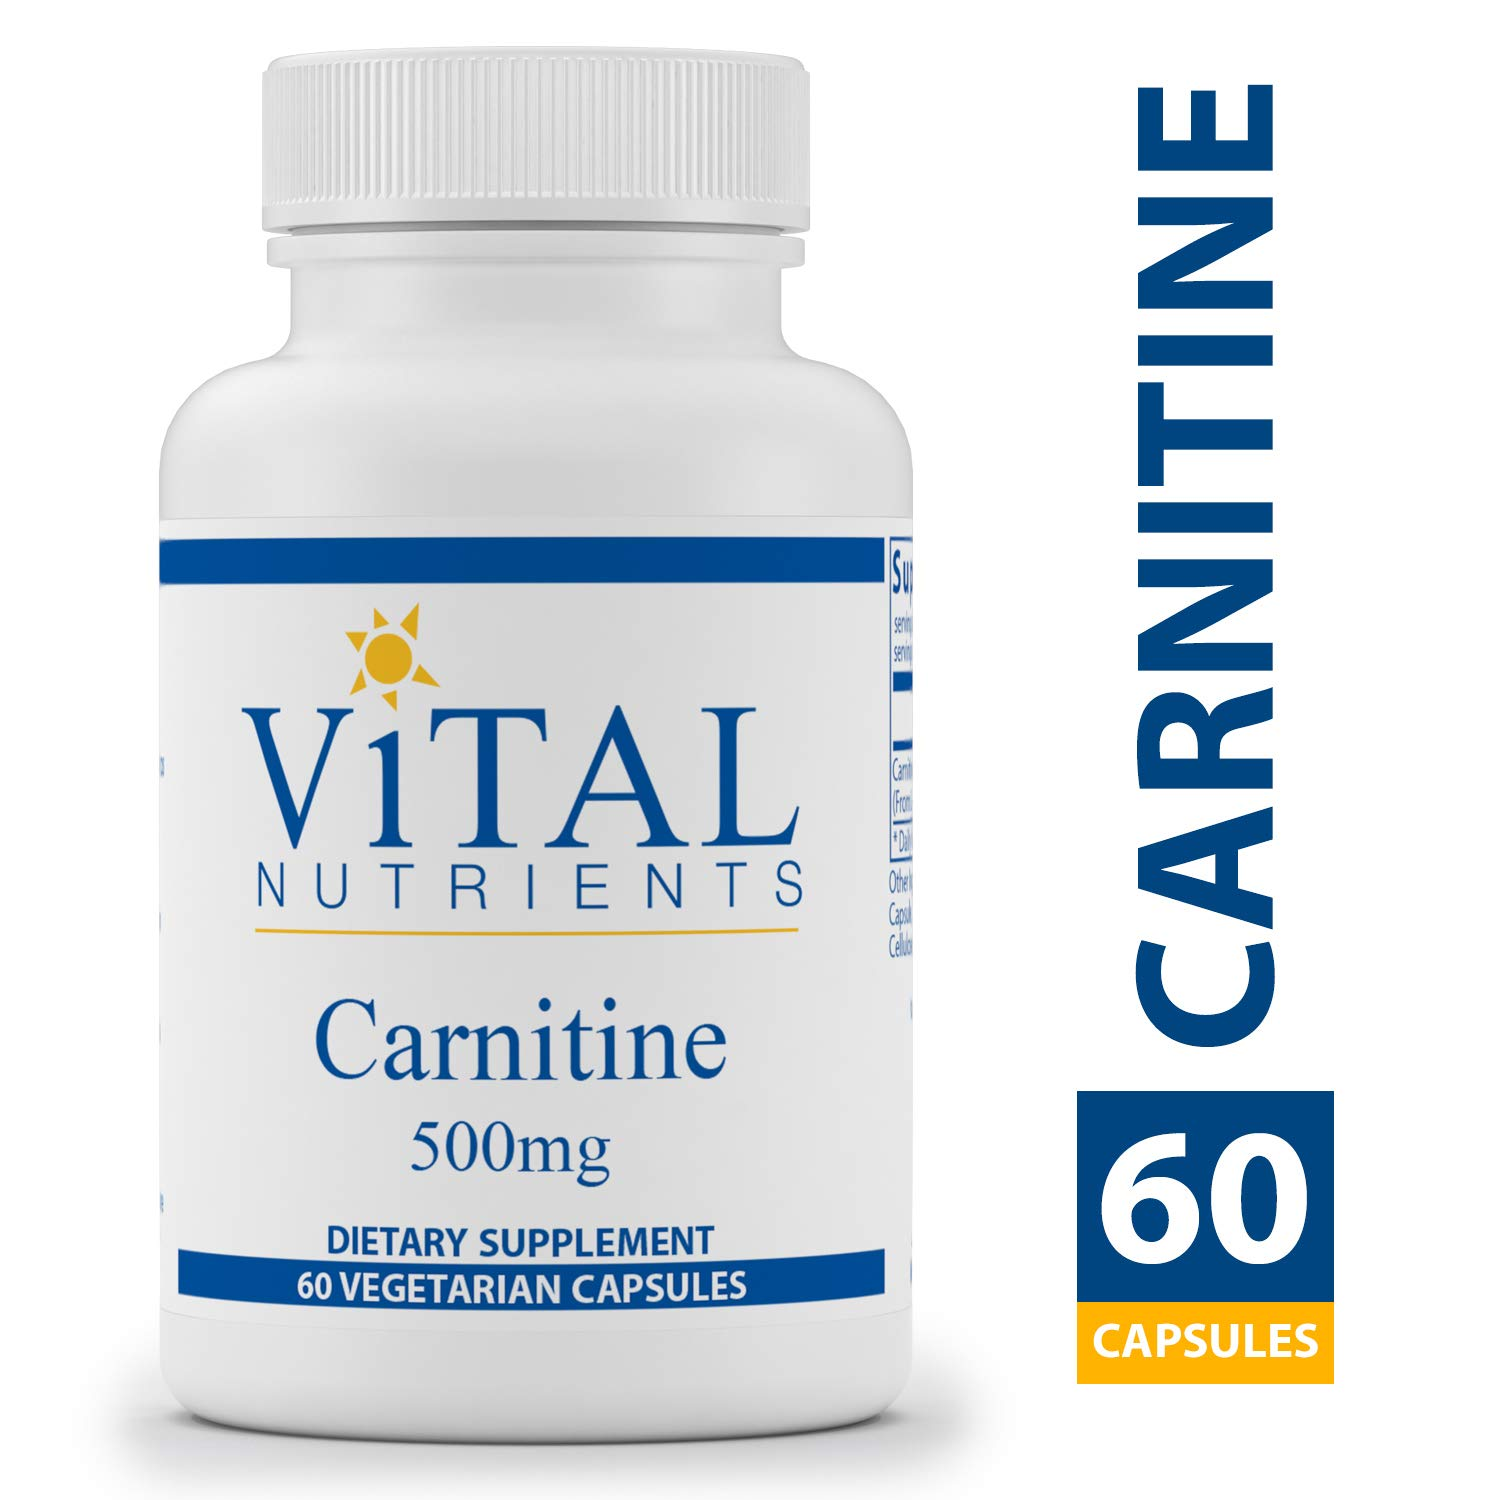 Vital Nutrients - Carnitine 500 mg - Cardiovascular and Fat Metabolism Support - 60 Capsules